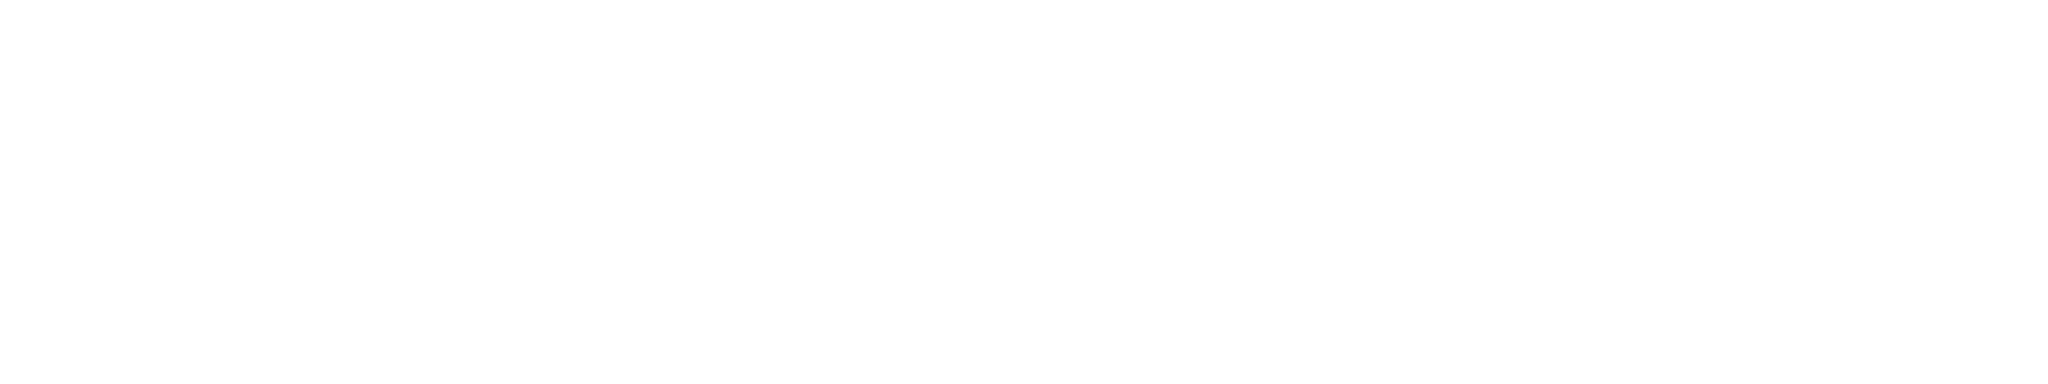 National Children's Center for Rural and Agricultural Health and Safety